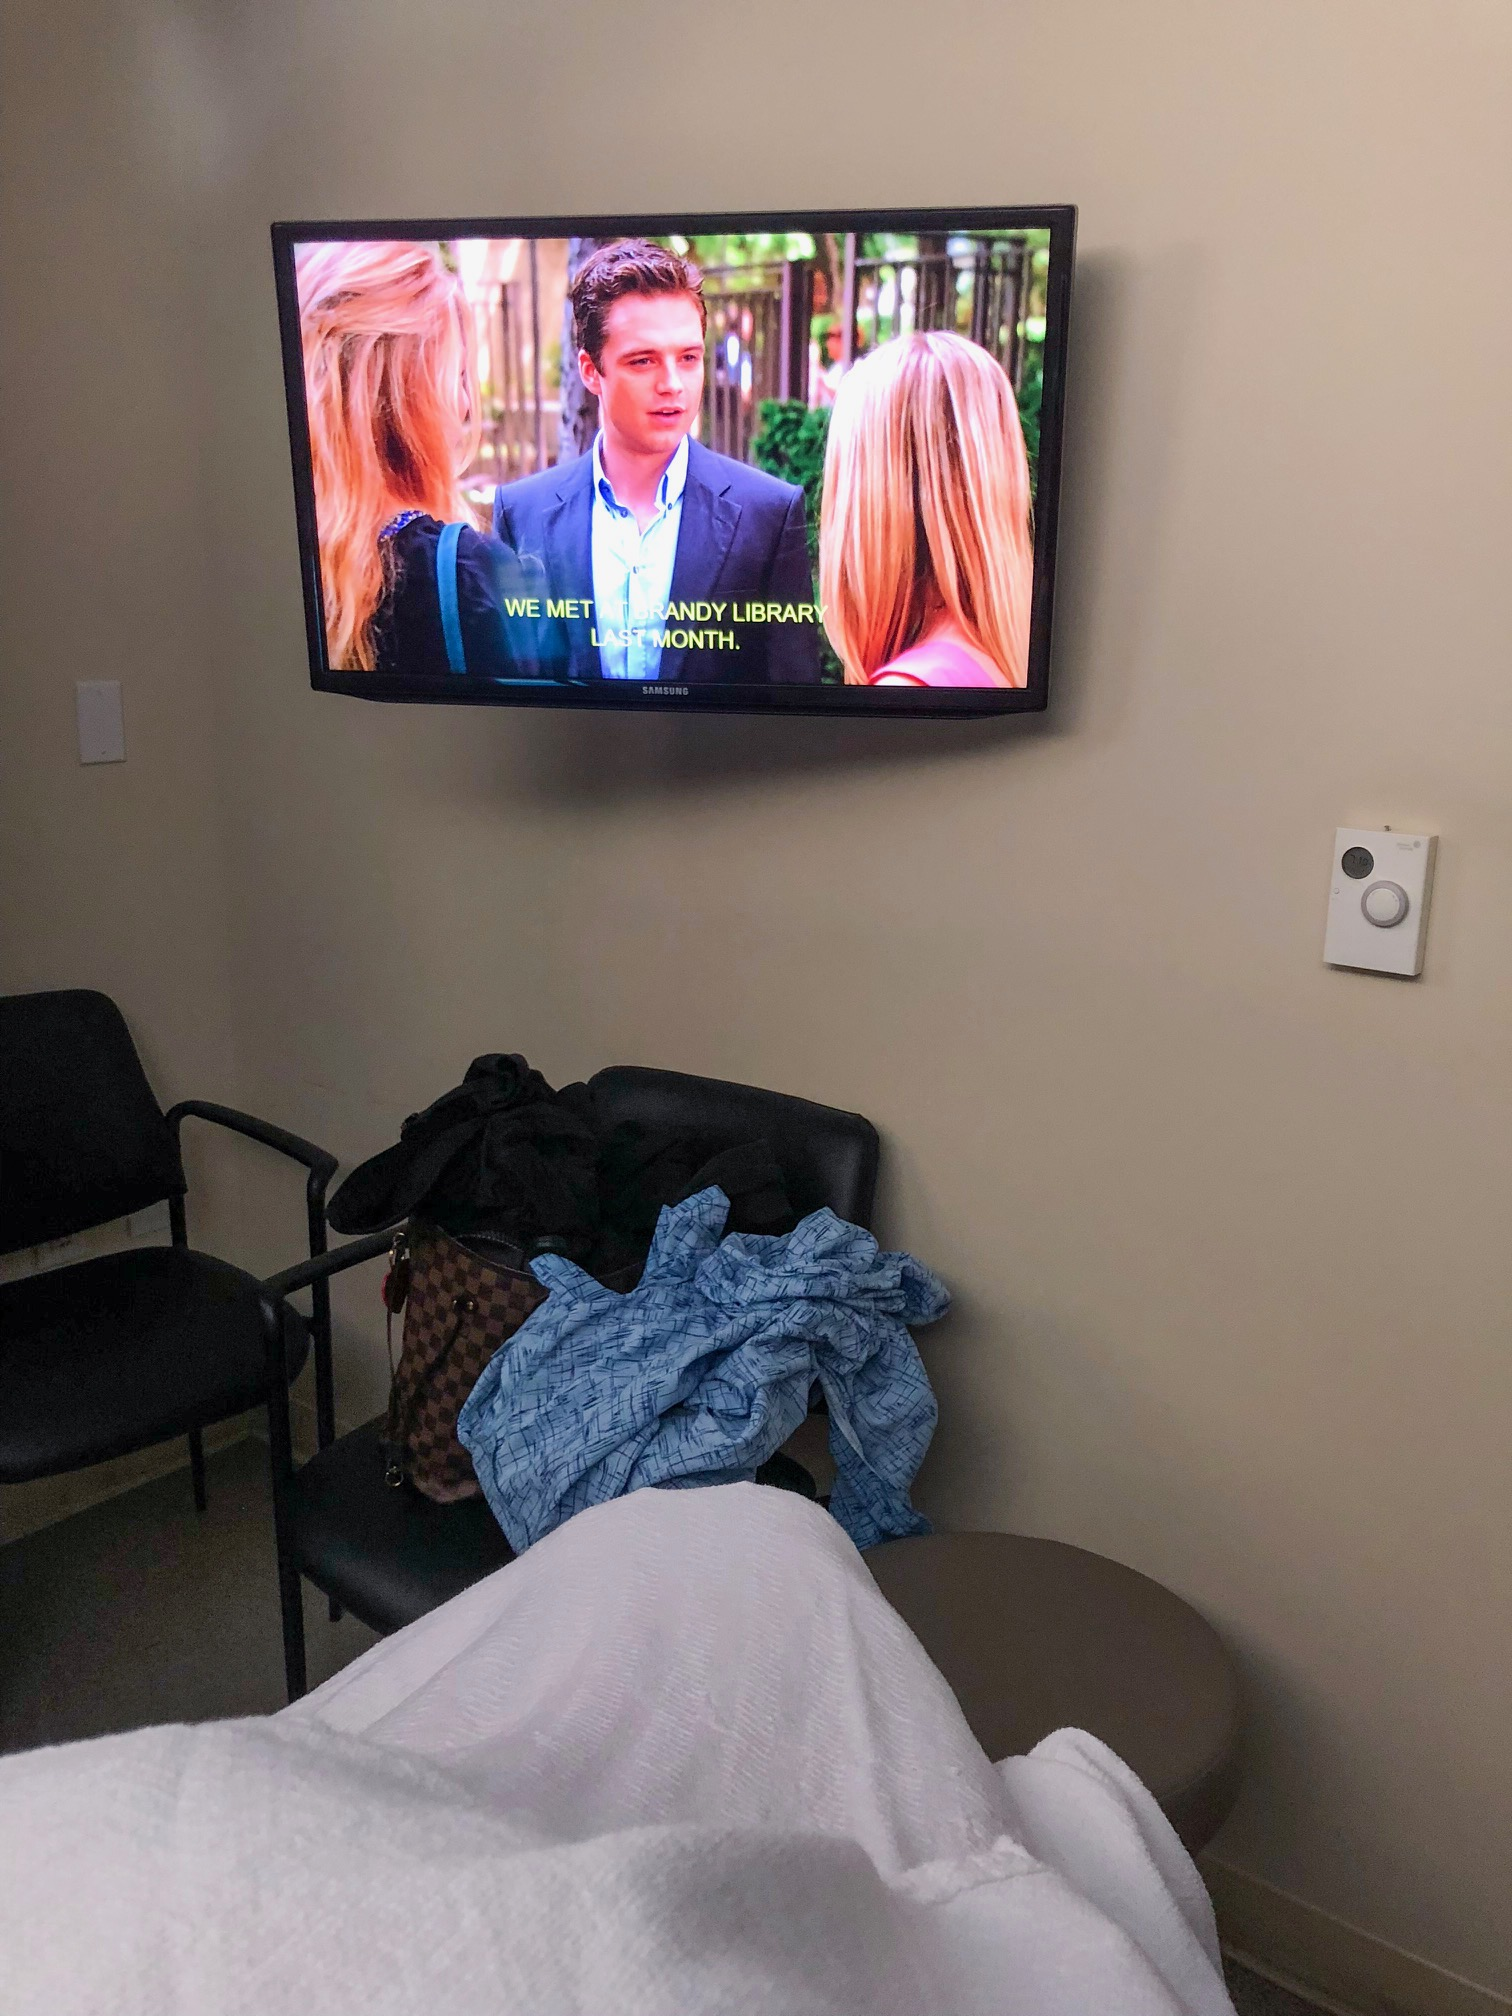 My experience trying CoolSculpting for the first time in Mountain View California at Dr. Fazilats office